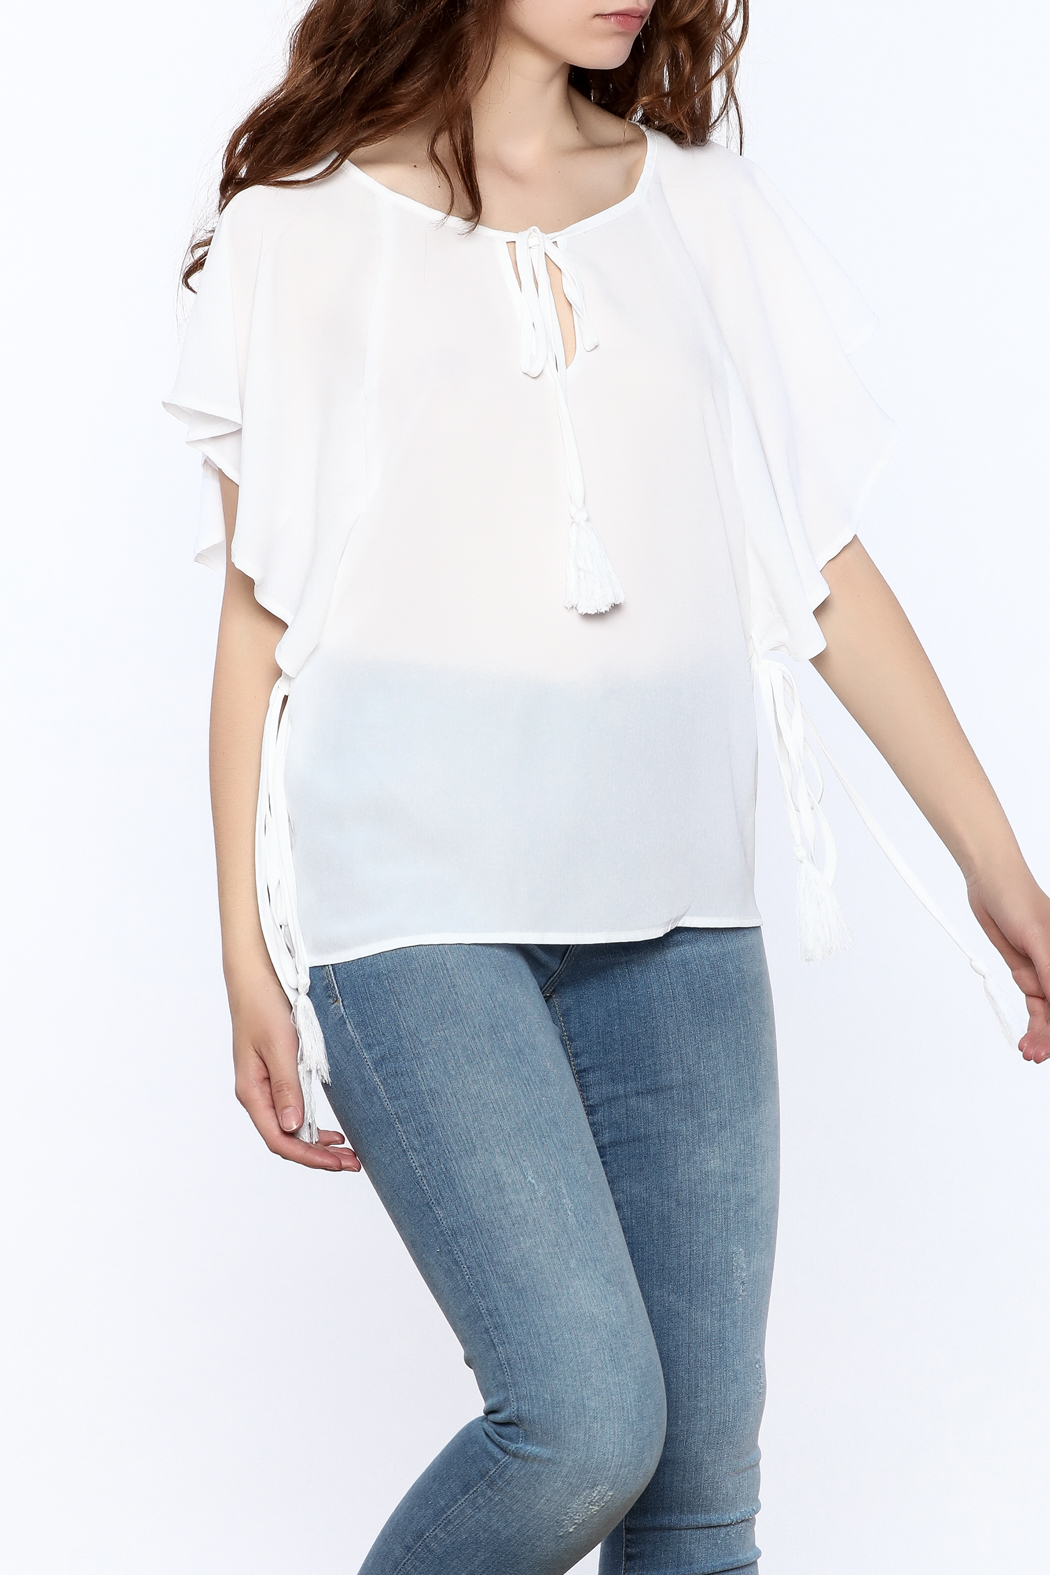 Lumiere White Tassel Top - Front Cropped Image